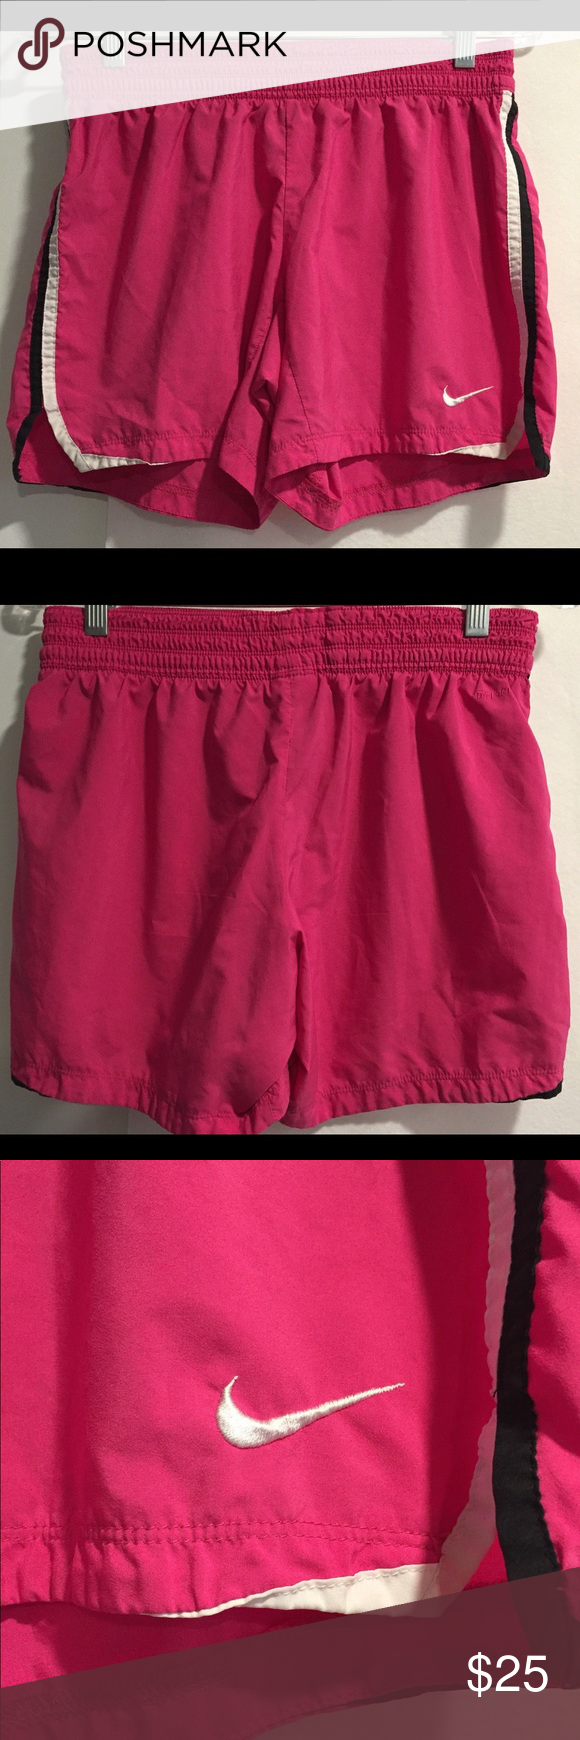 d81da0ba3b348 Nike Dri Fit Activewear Pink Shorts Size S Preowned Athletic Running Shorts